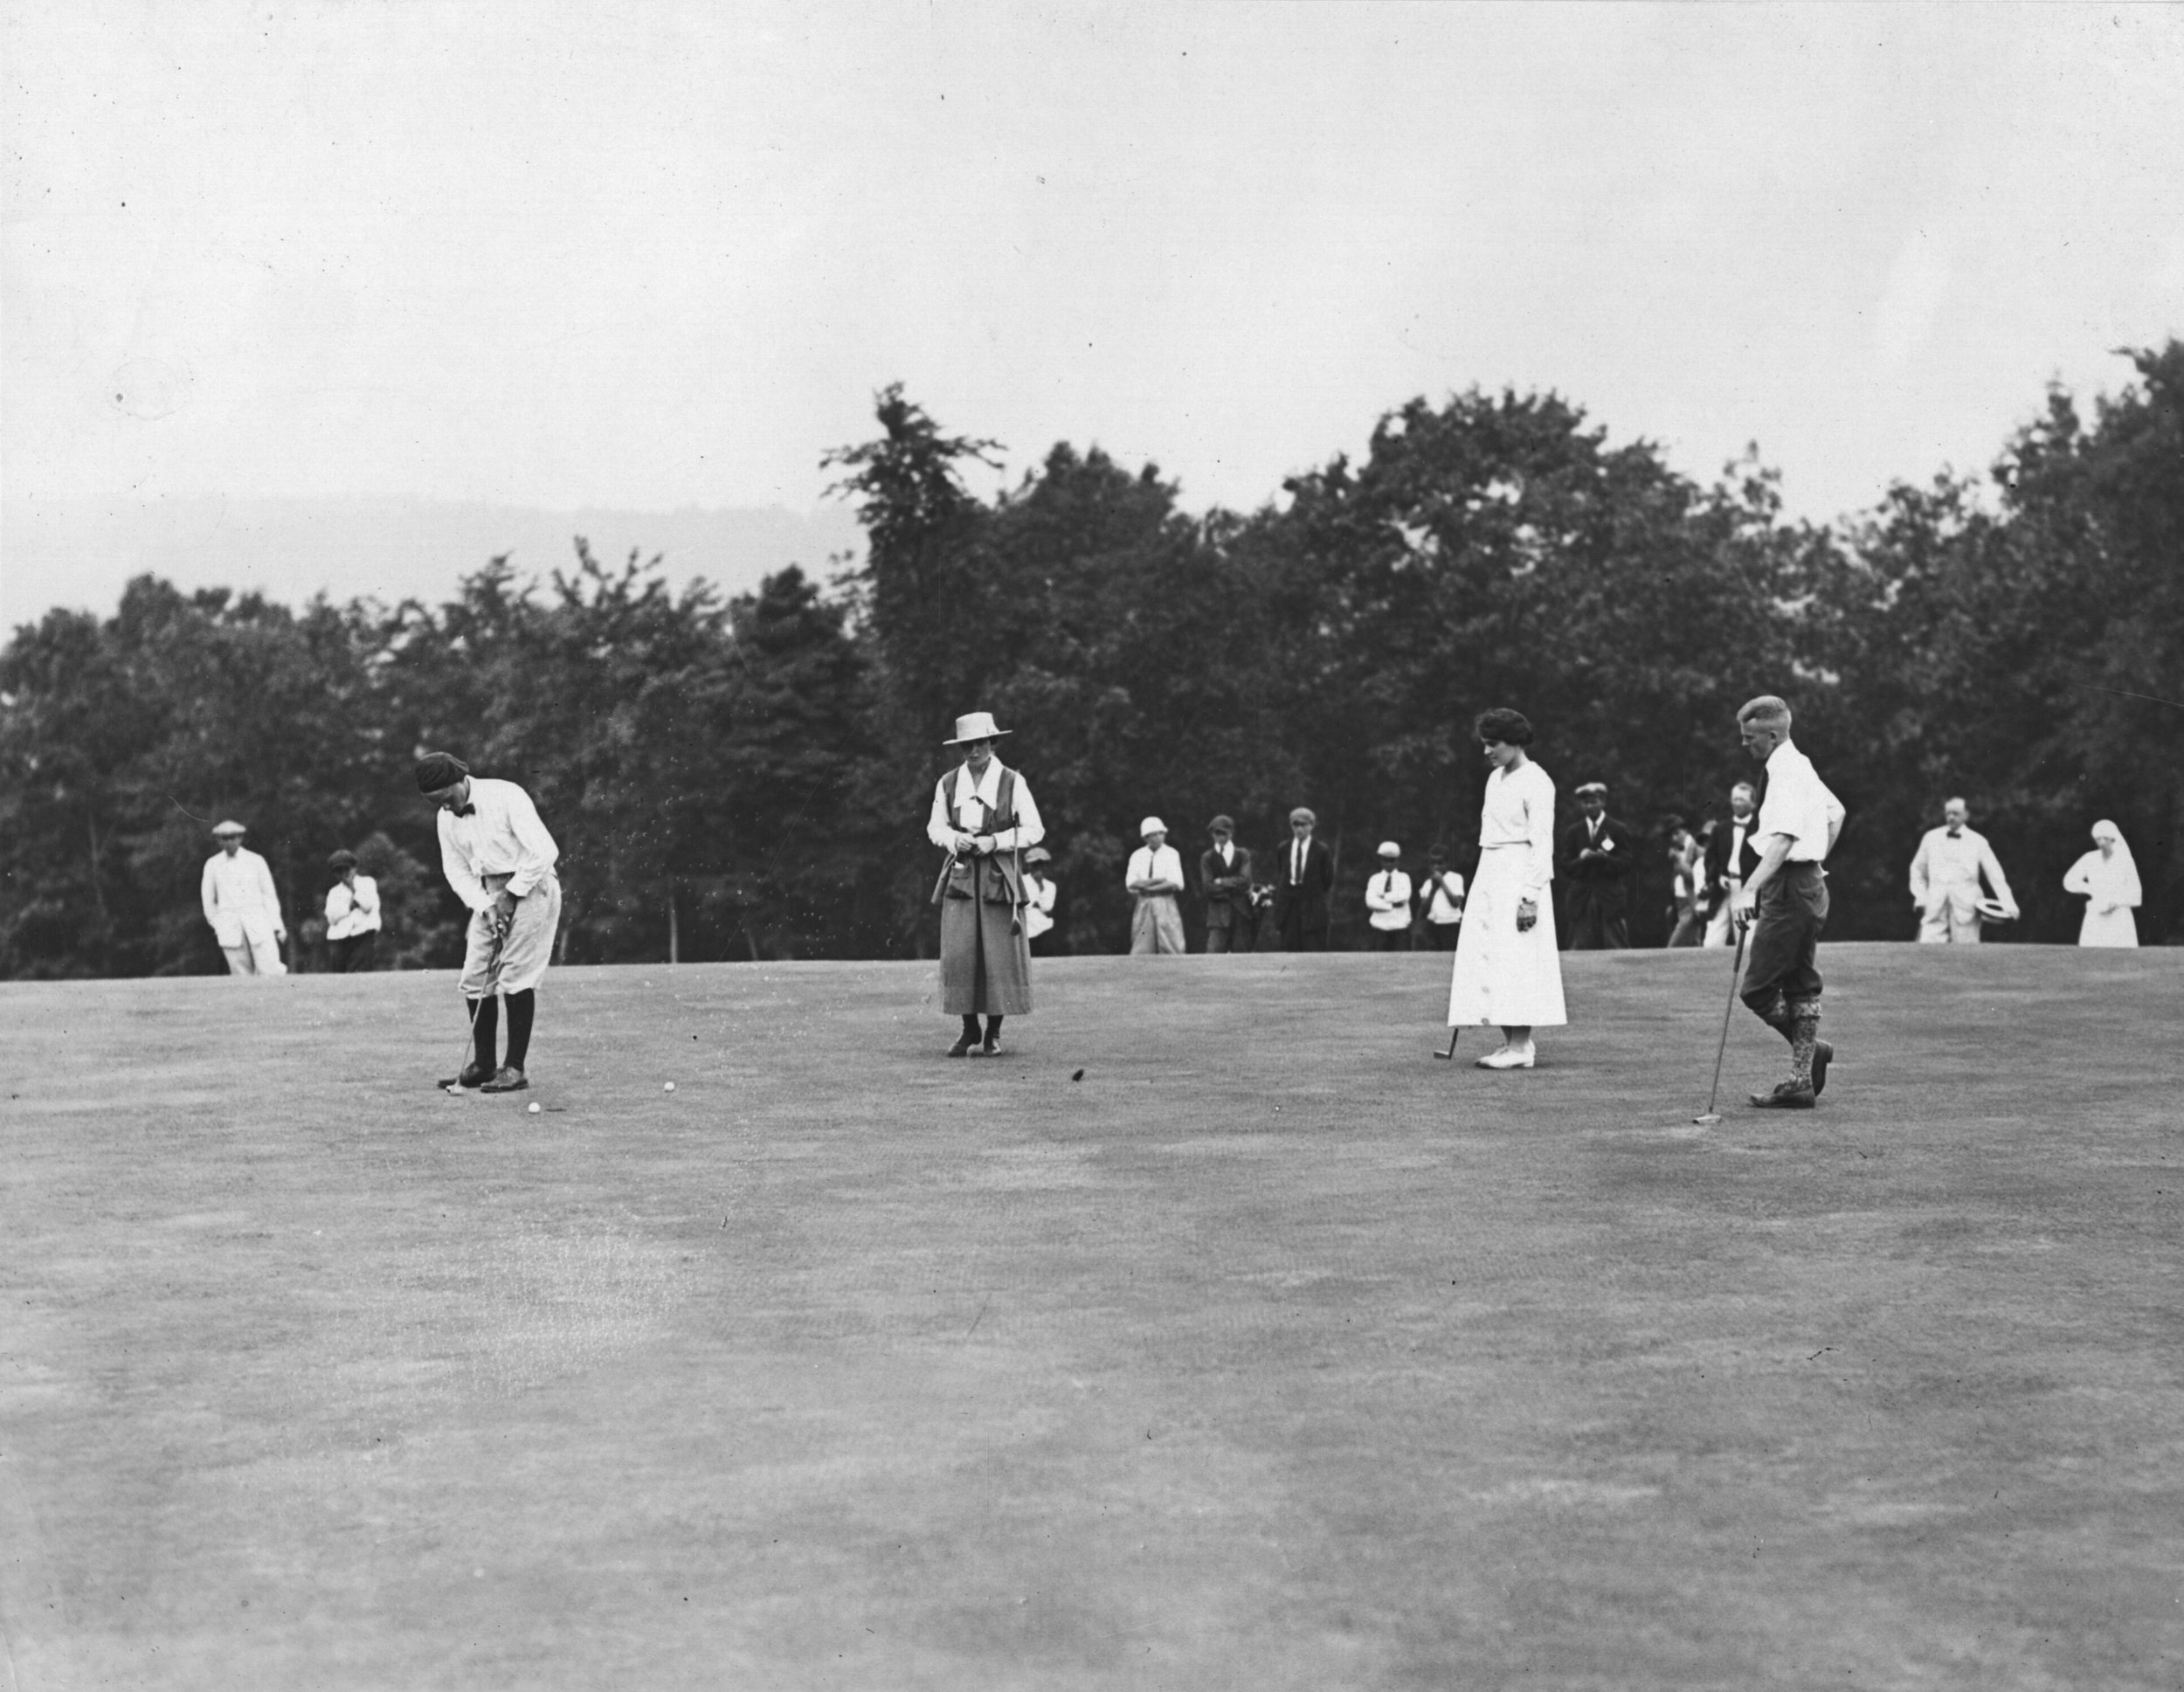 East Lake teenagers Bobby Jones and Alexa Stirling toured the Untied States and Canada raising money for the Red Cross during the Great War. Here they play Montclair Golf club in Montclair, New Jersey.